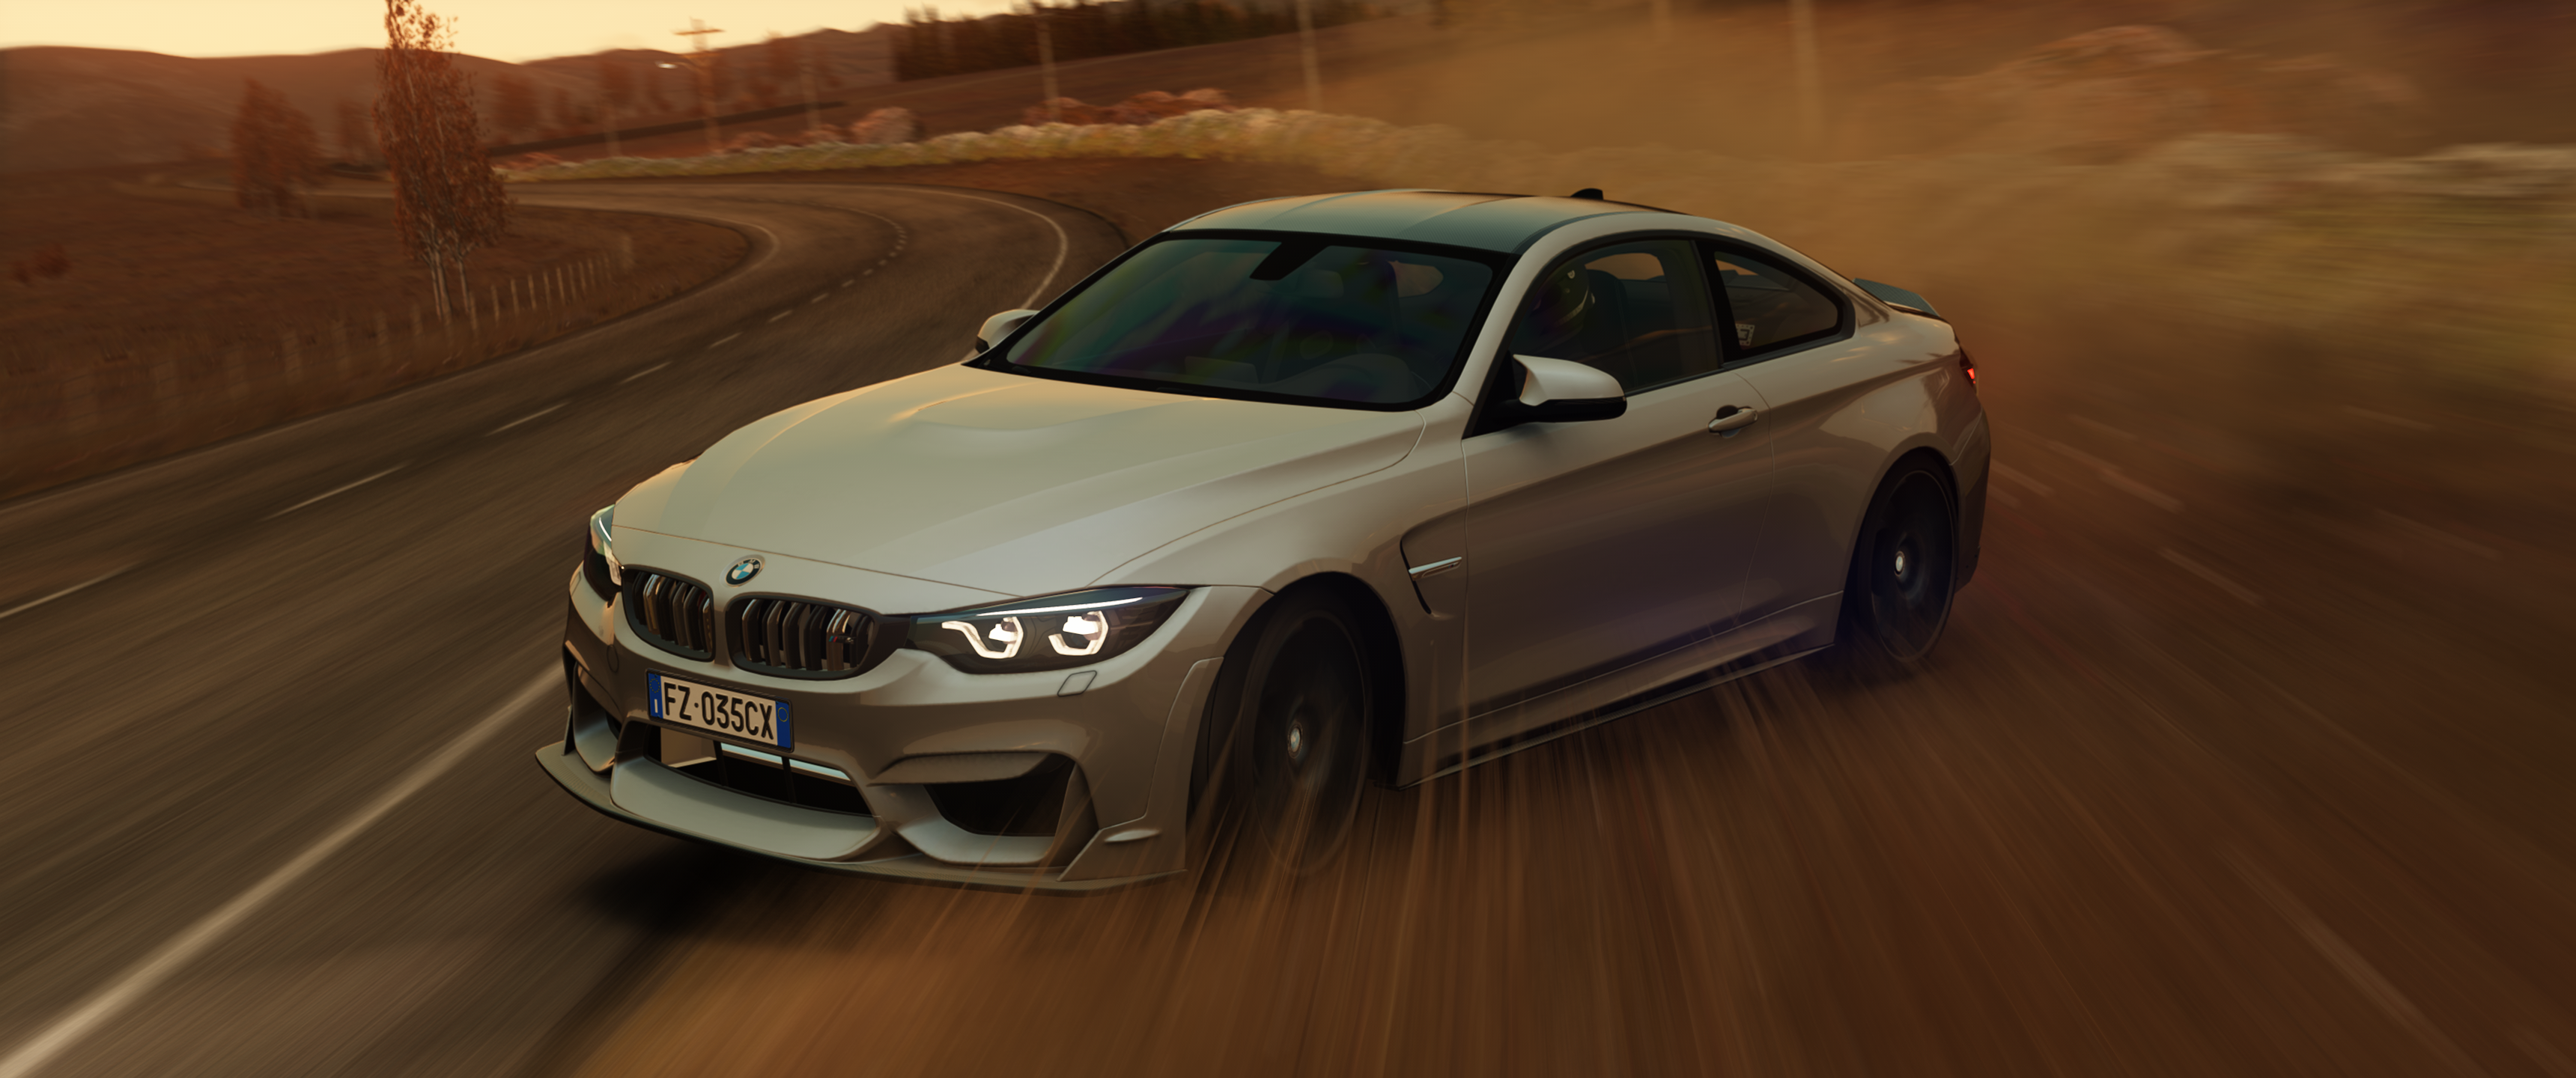 TRY OUR NEW M4.